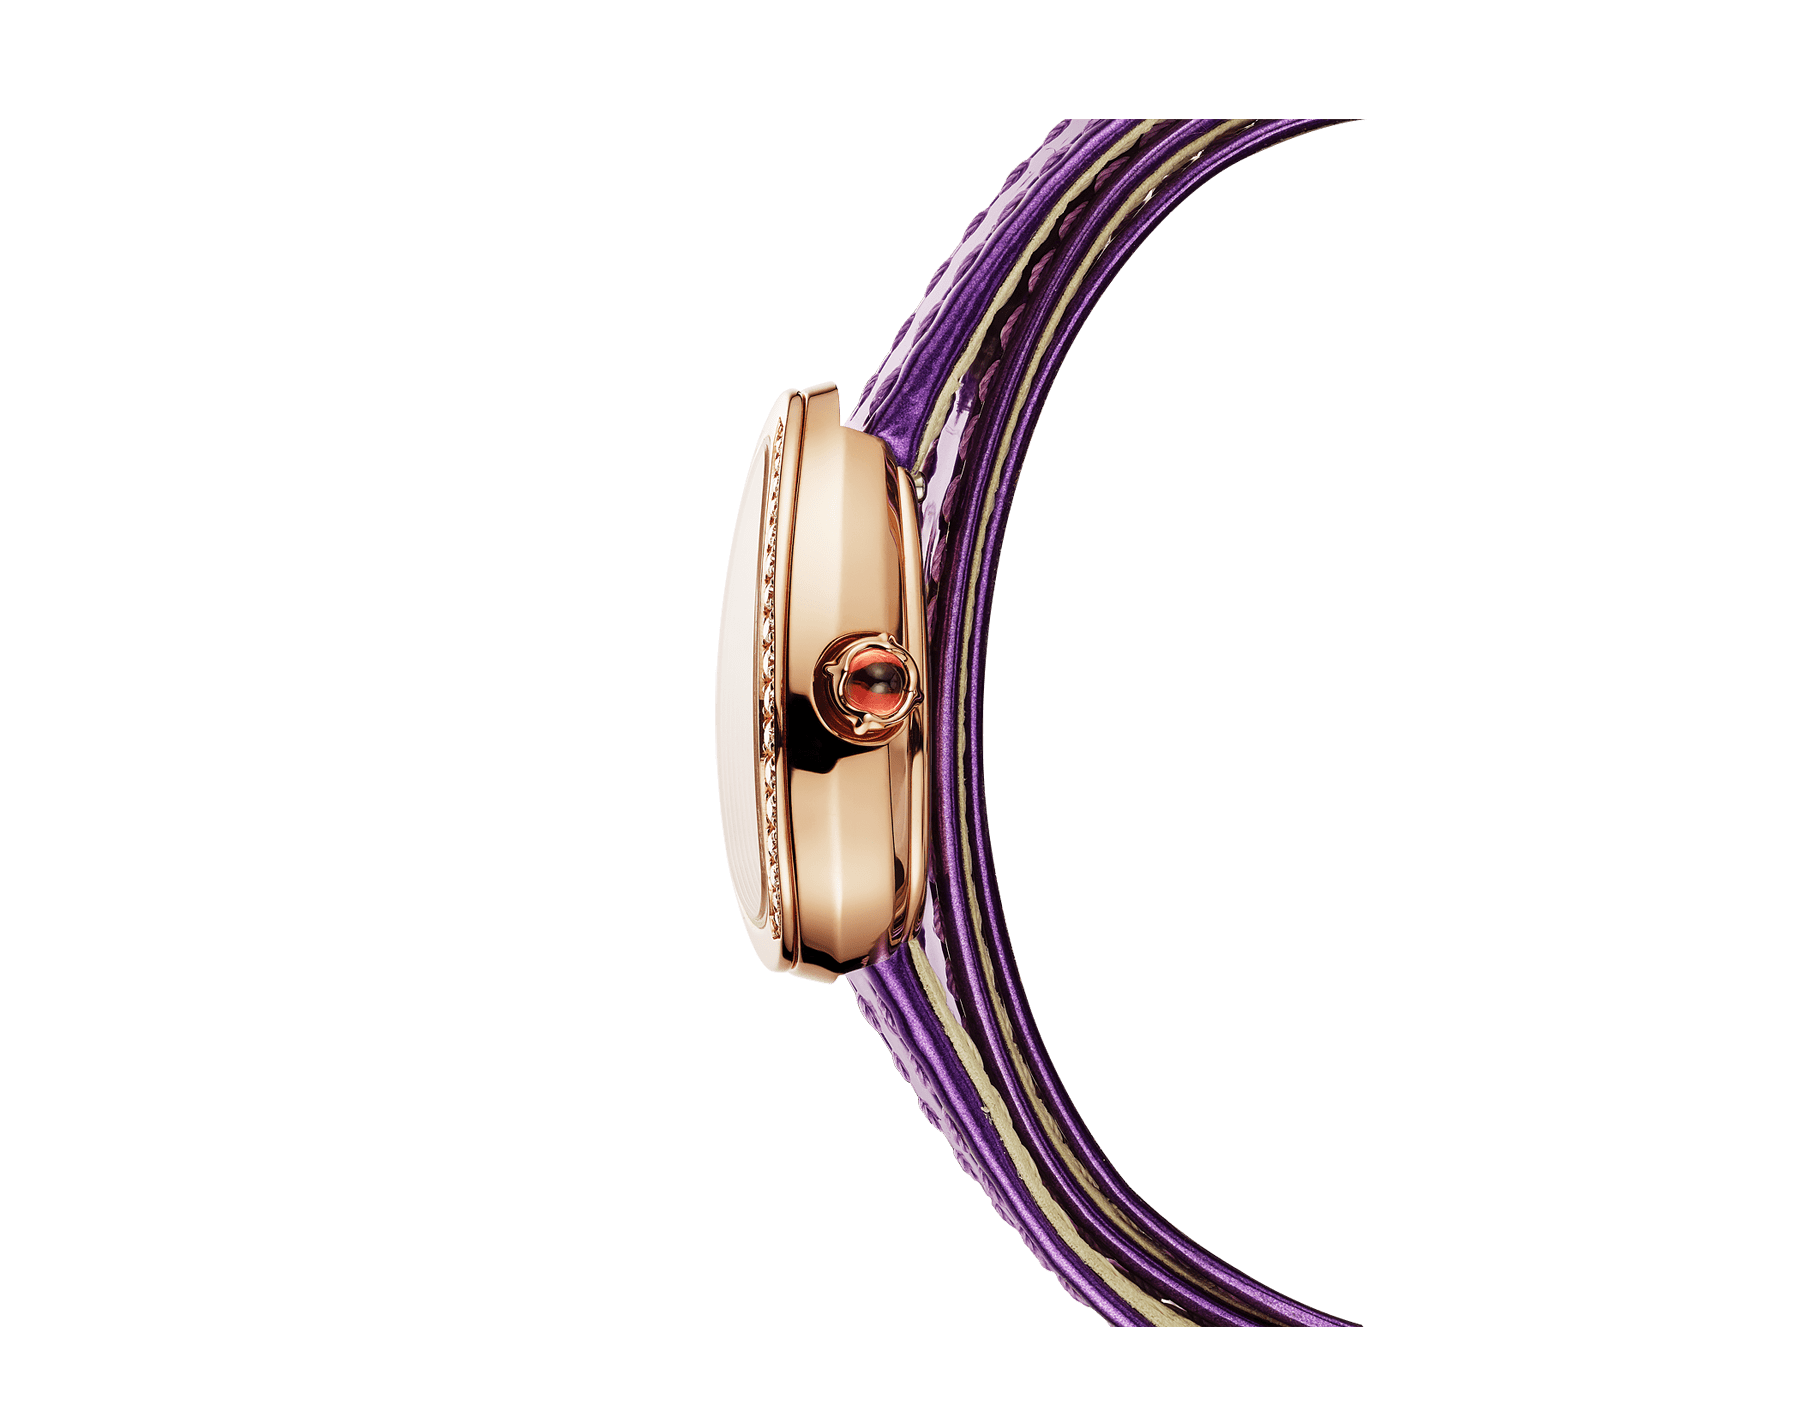 Serpenti watch with 18 kt rose gold case set with diamonds, black lacquered dial and interchangeable qadruple spiral bracelet in wisteria jade brushed metallic calf leather. 102969 image 2